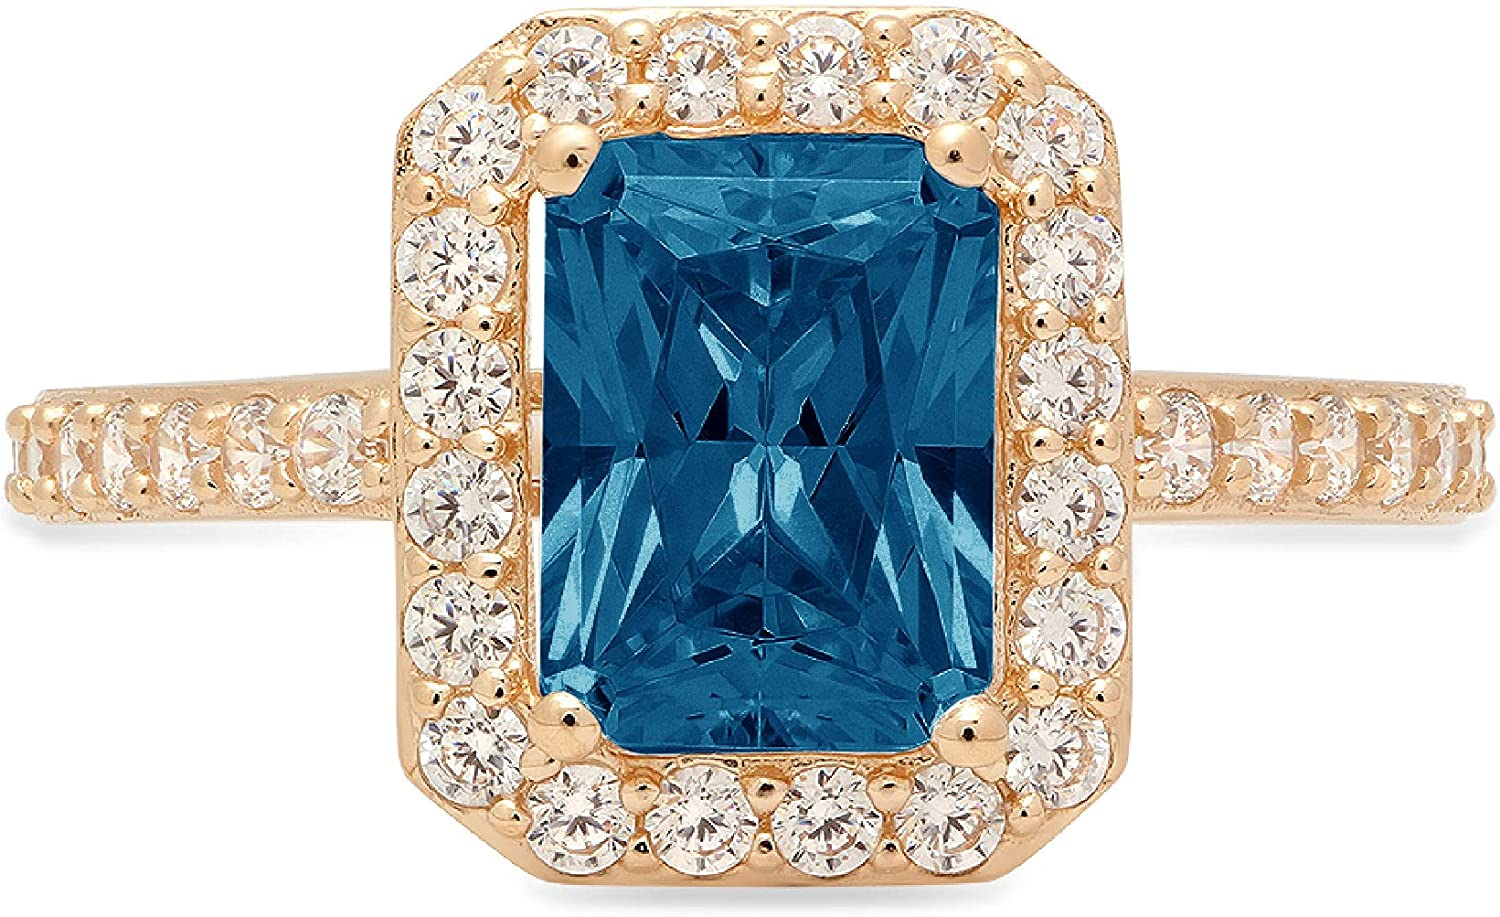 Clara Pucci 2.17 Brilliant Emerald Cut Solitaire Accent Halo Stunning Genuine Flawless Natural London Blue Topaz Gem Designer Modern Ring Solid 18K Yellow Gold